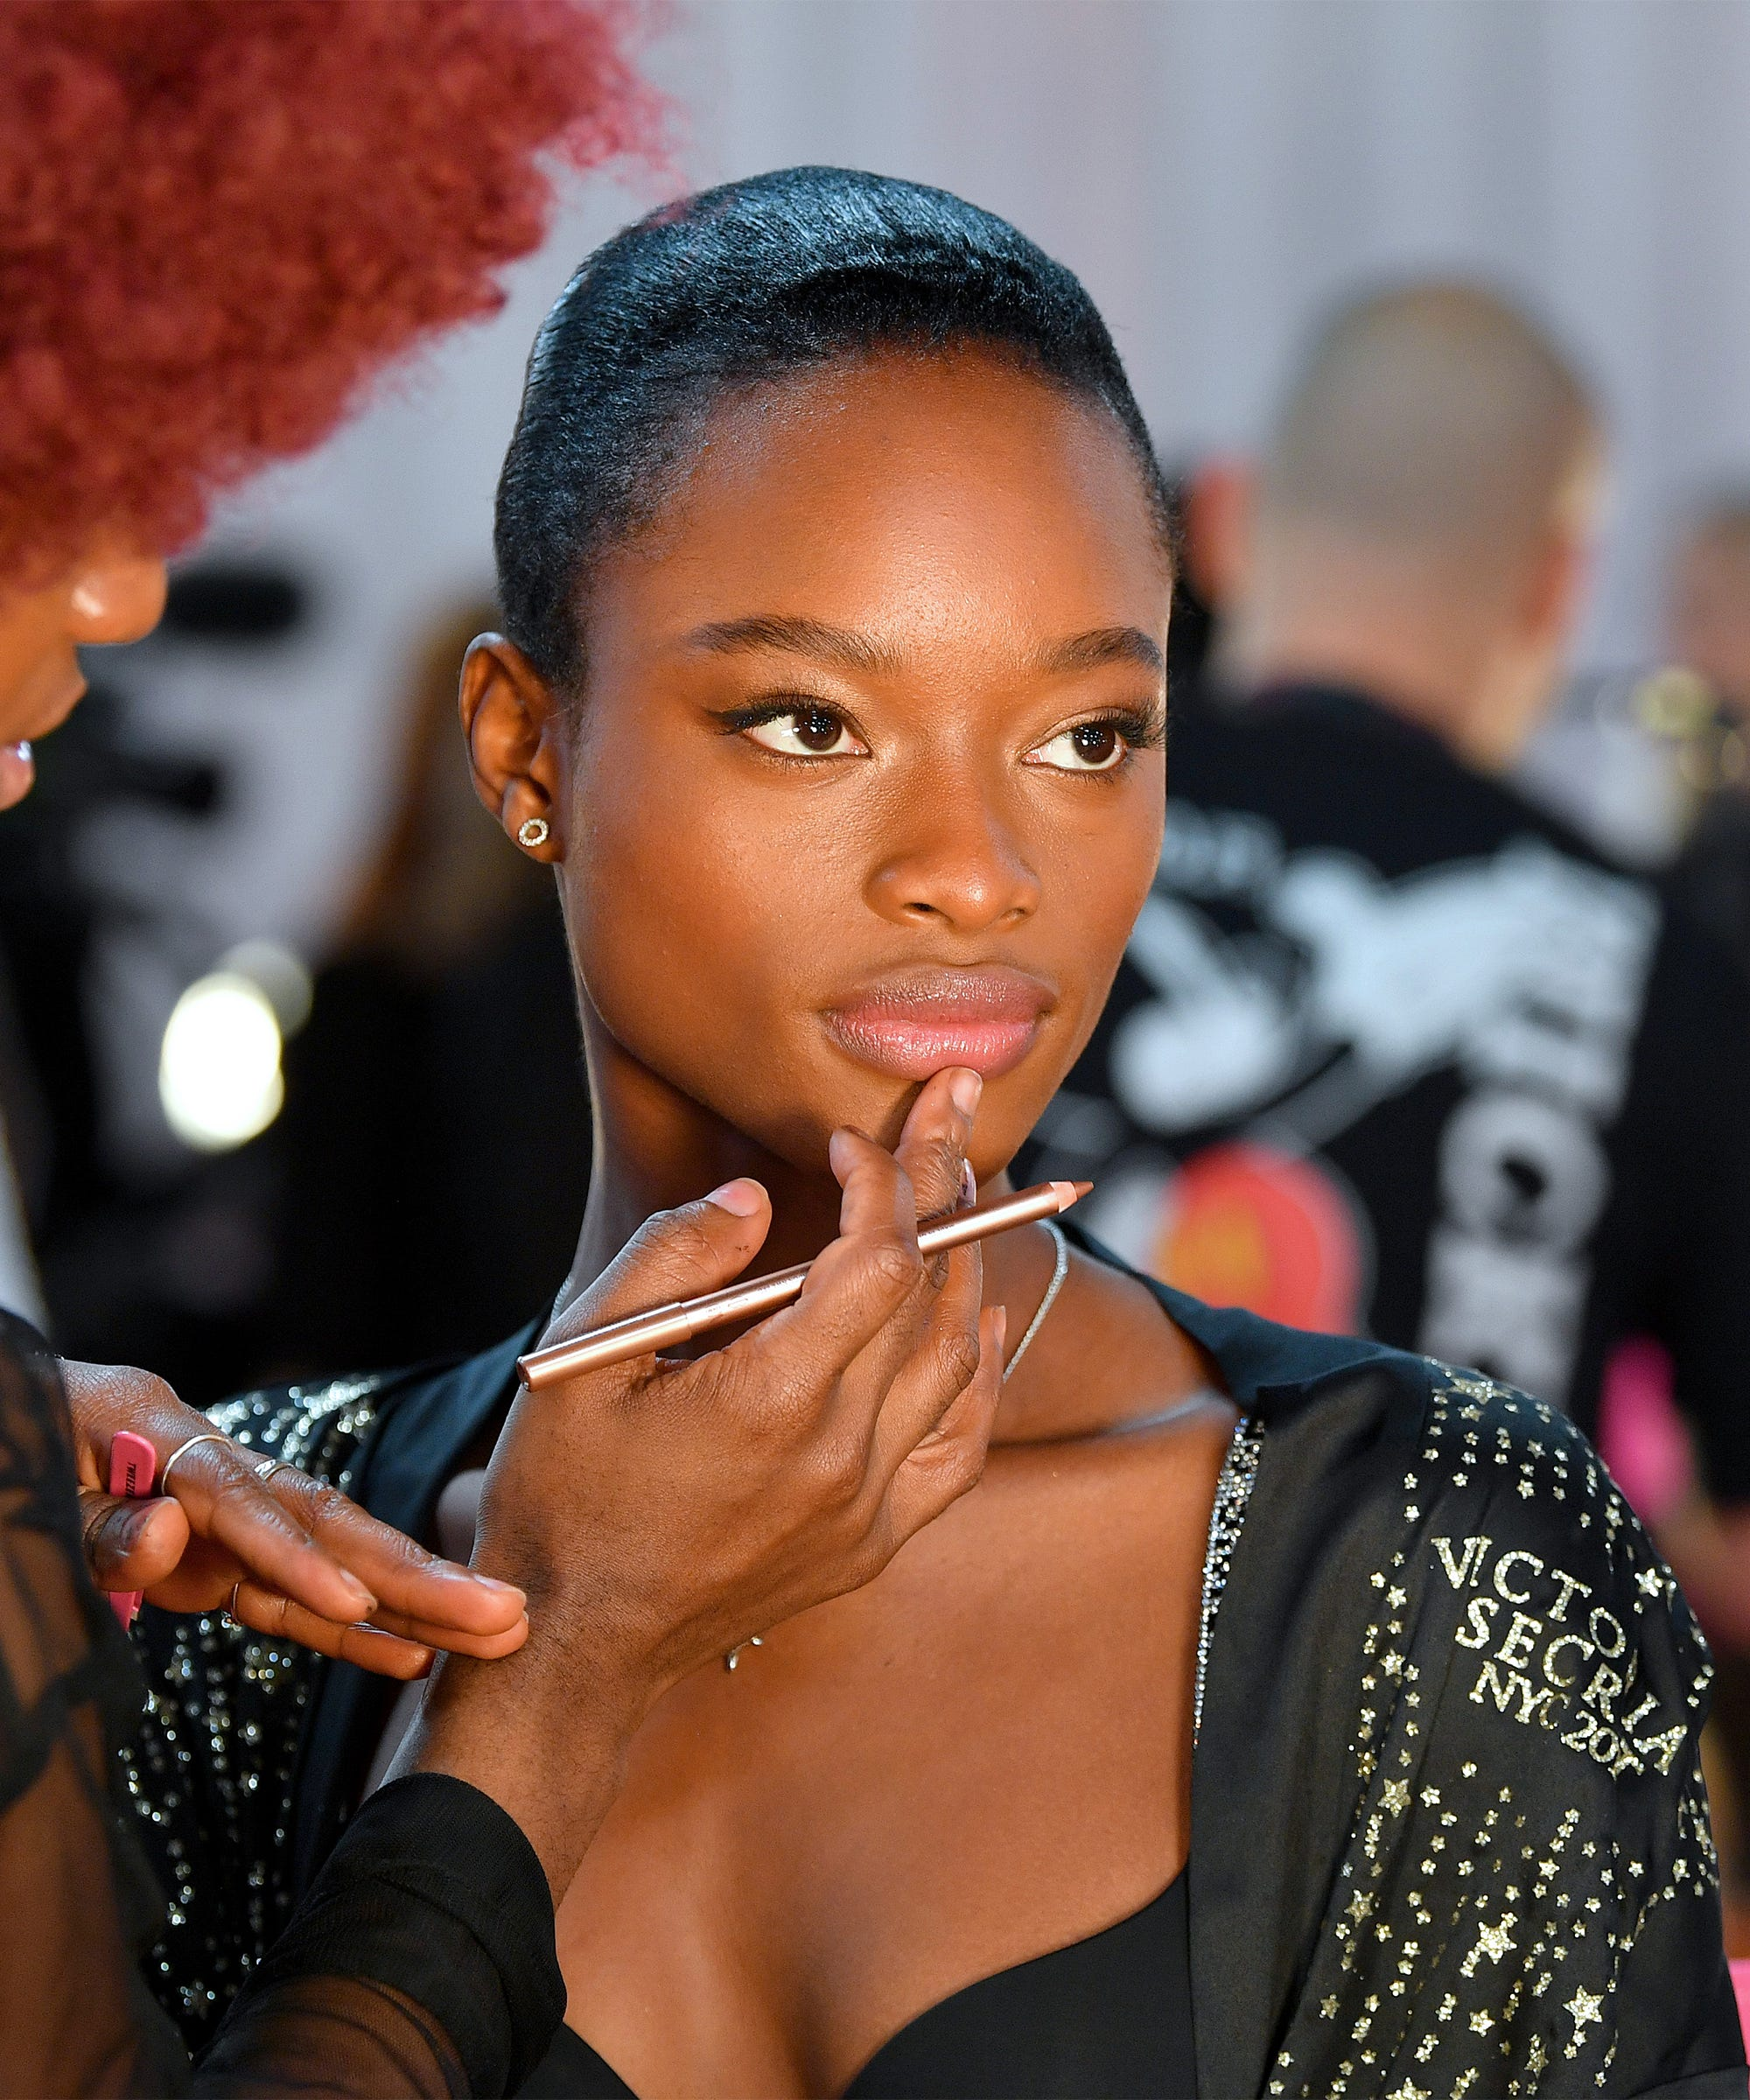 3bdac48092f How To Recreate VS Model Beauty Looks From 2018 Show